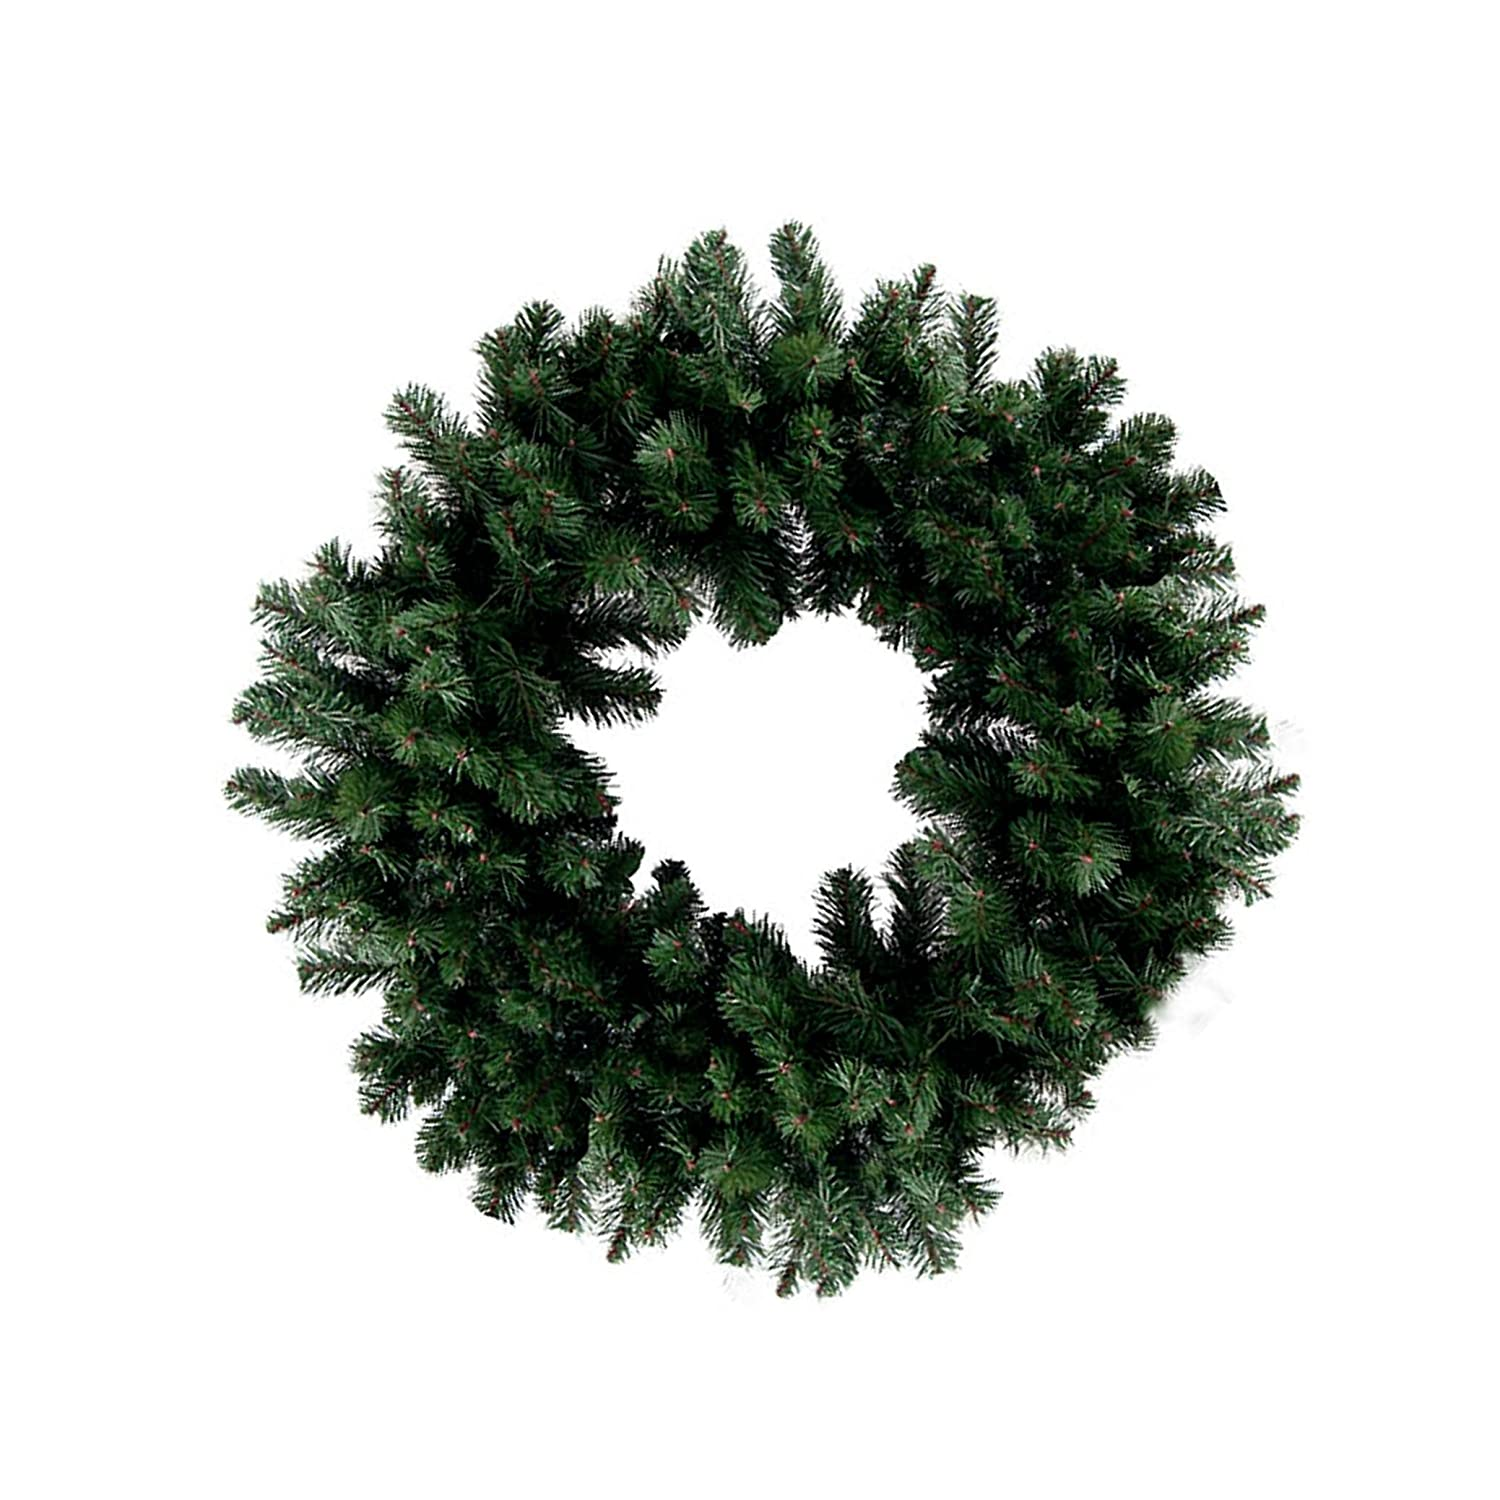 36 Inches Brown, Green, Black 1 Single Large Size Decorative Holiday Wreath for Door Made of Resin w//Artificial Winter Fluffy Festive Christmas Pine Leaves /& Branches Style Custom /& Unique